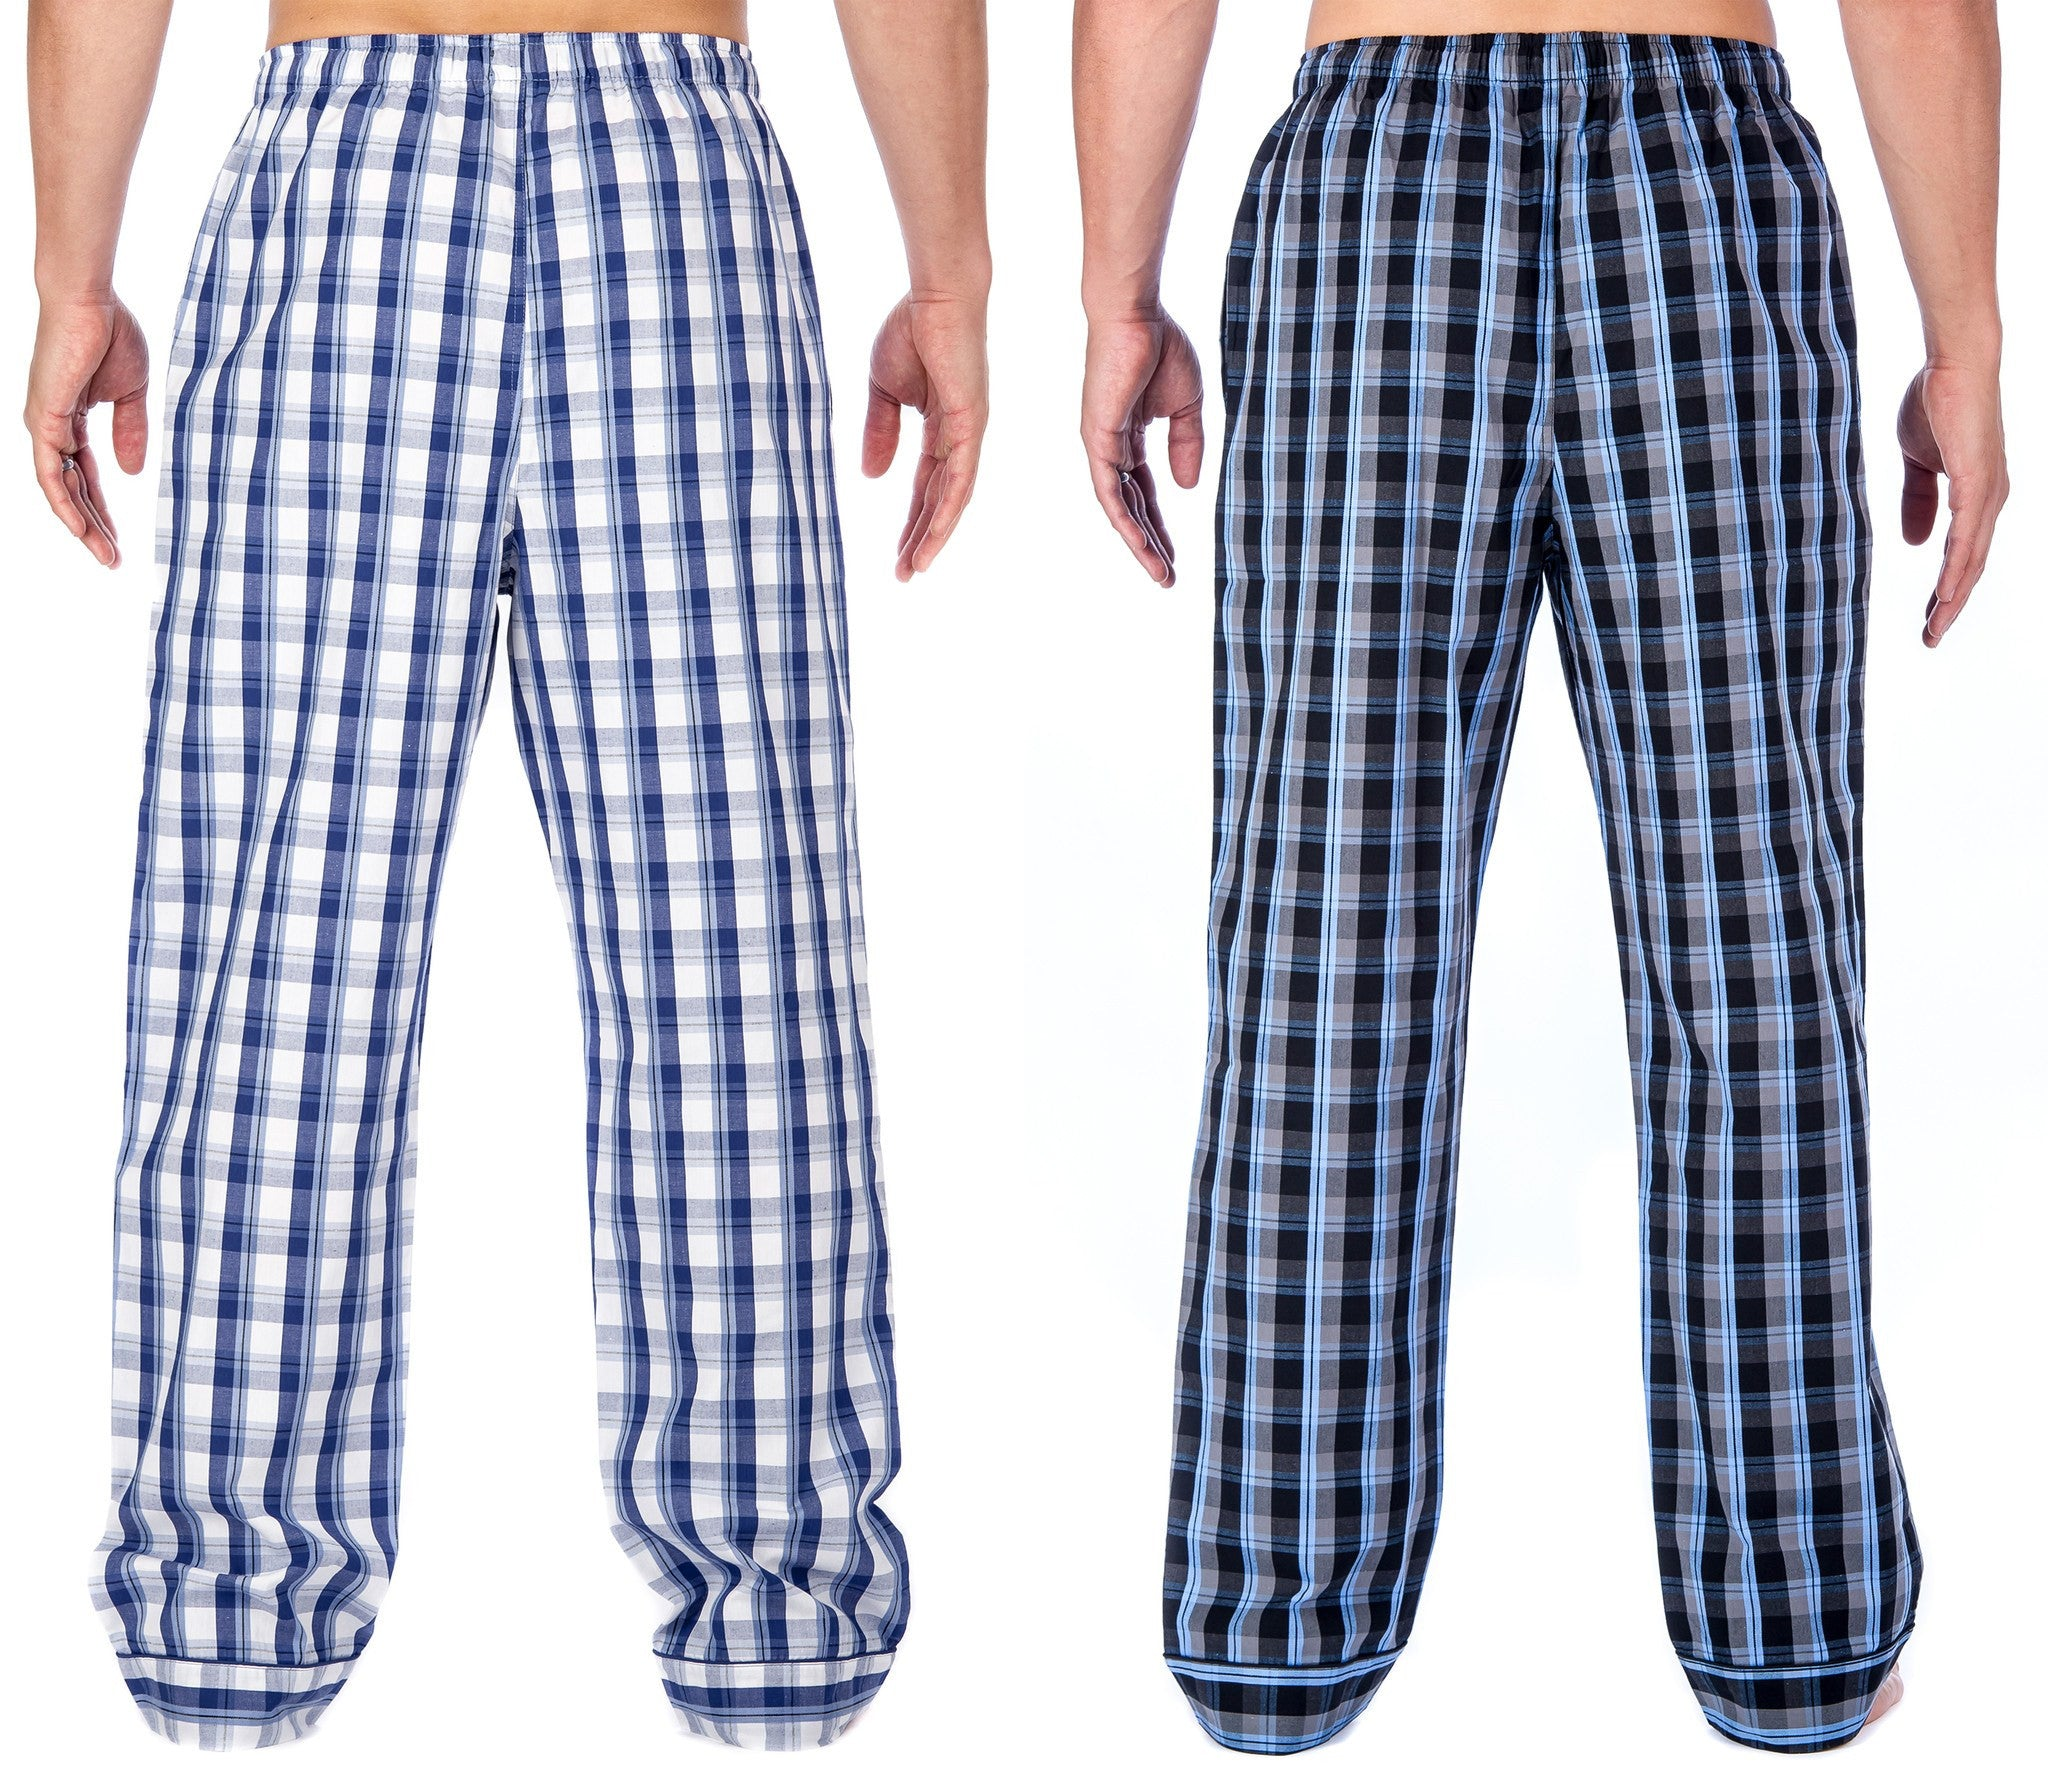 2-Pack (Blue/Grey - Blue/White Plaid)